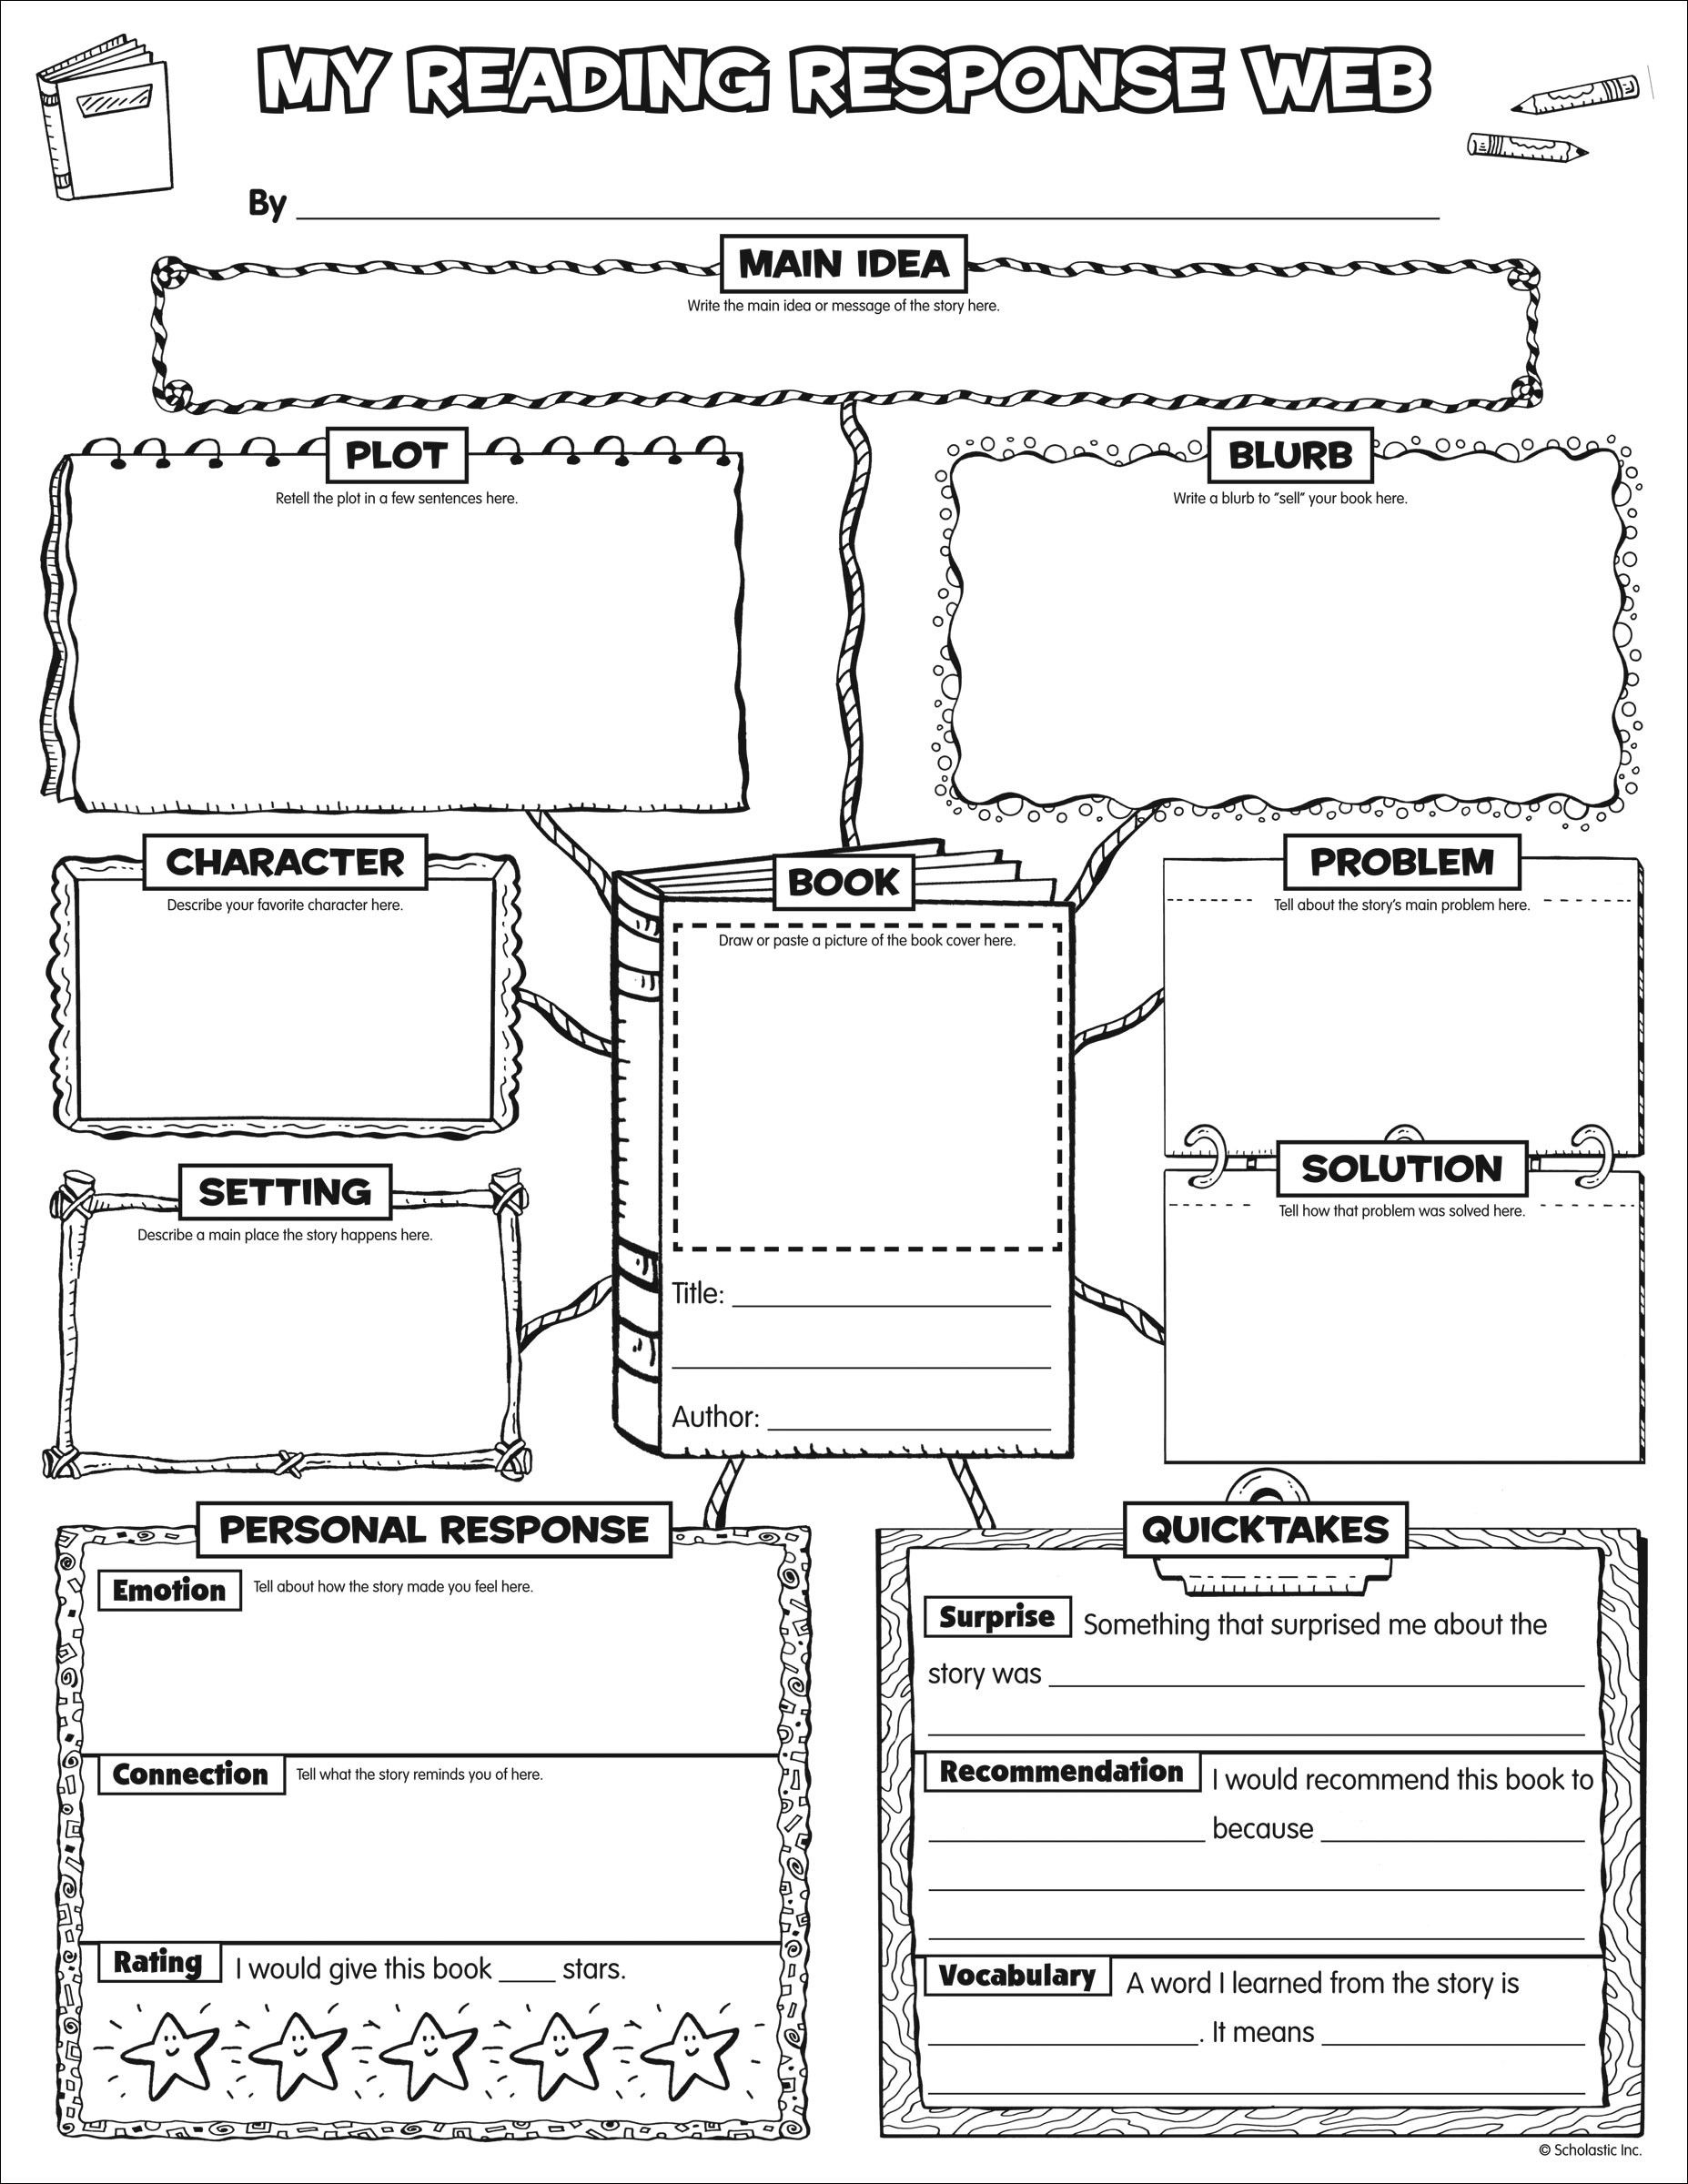 small resolution of Pin by Lorraine Concilio on Literacy - Reading   Reading response worksheets